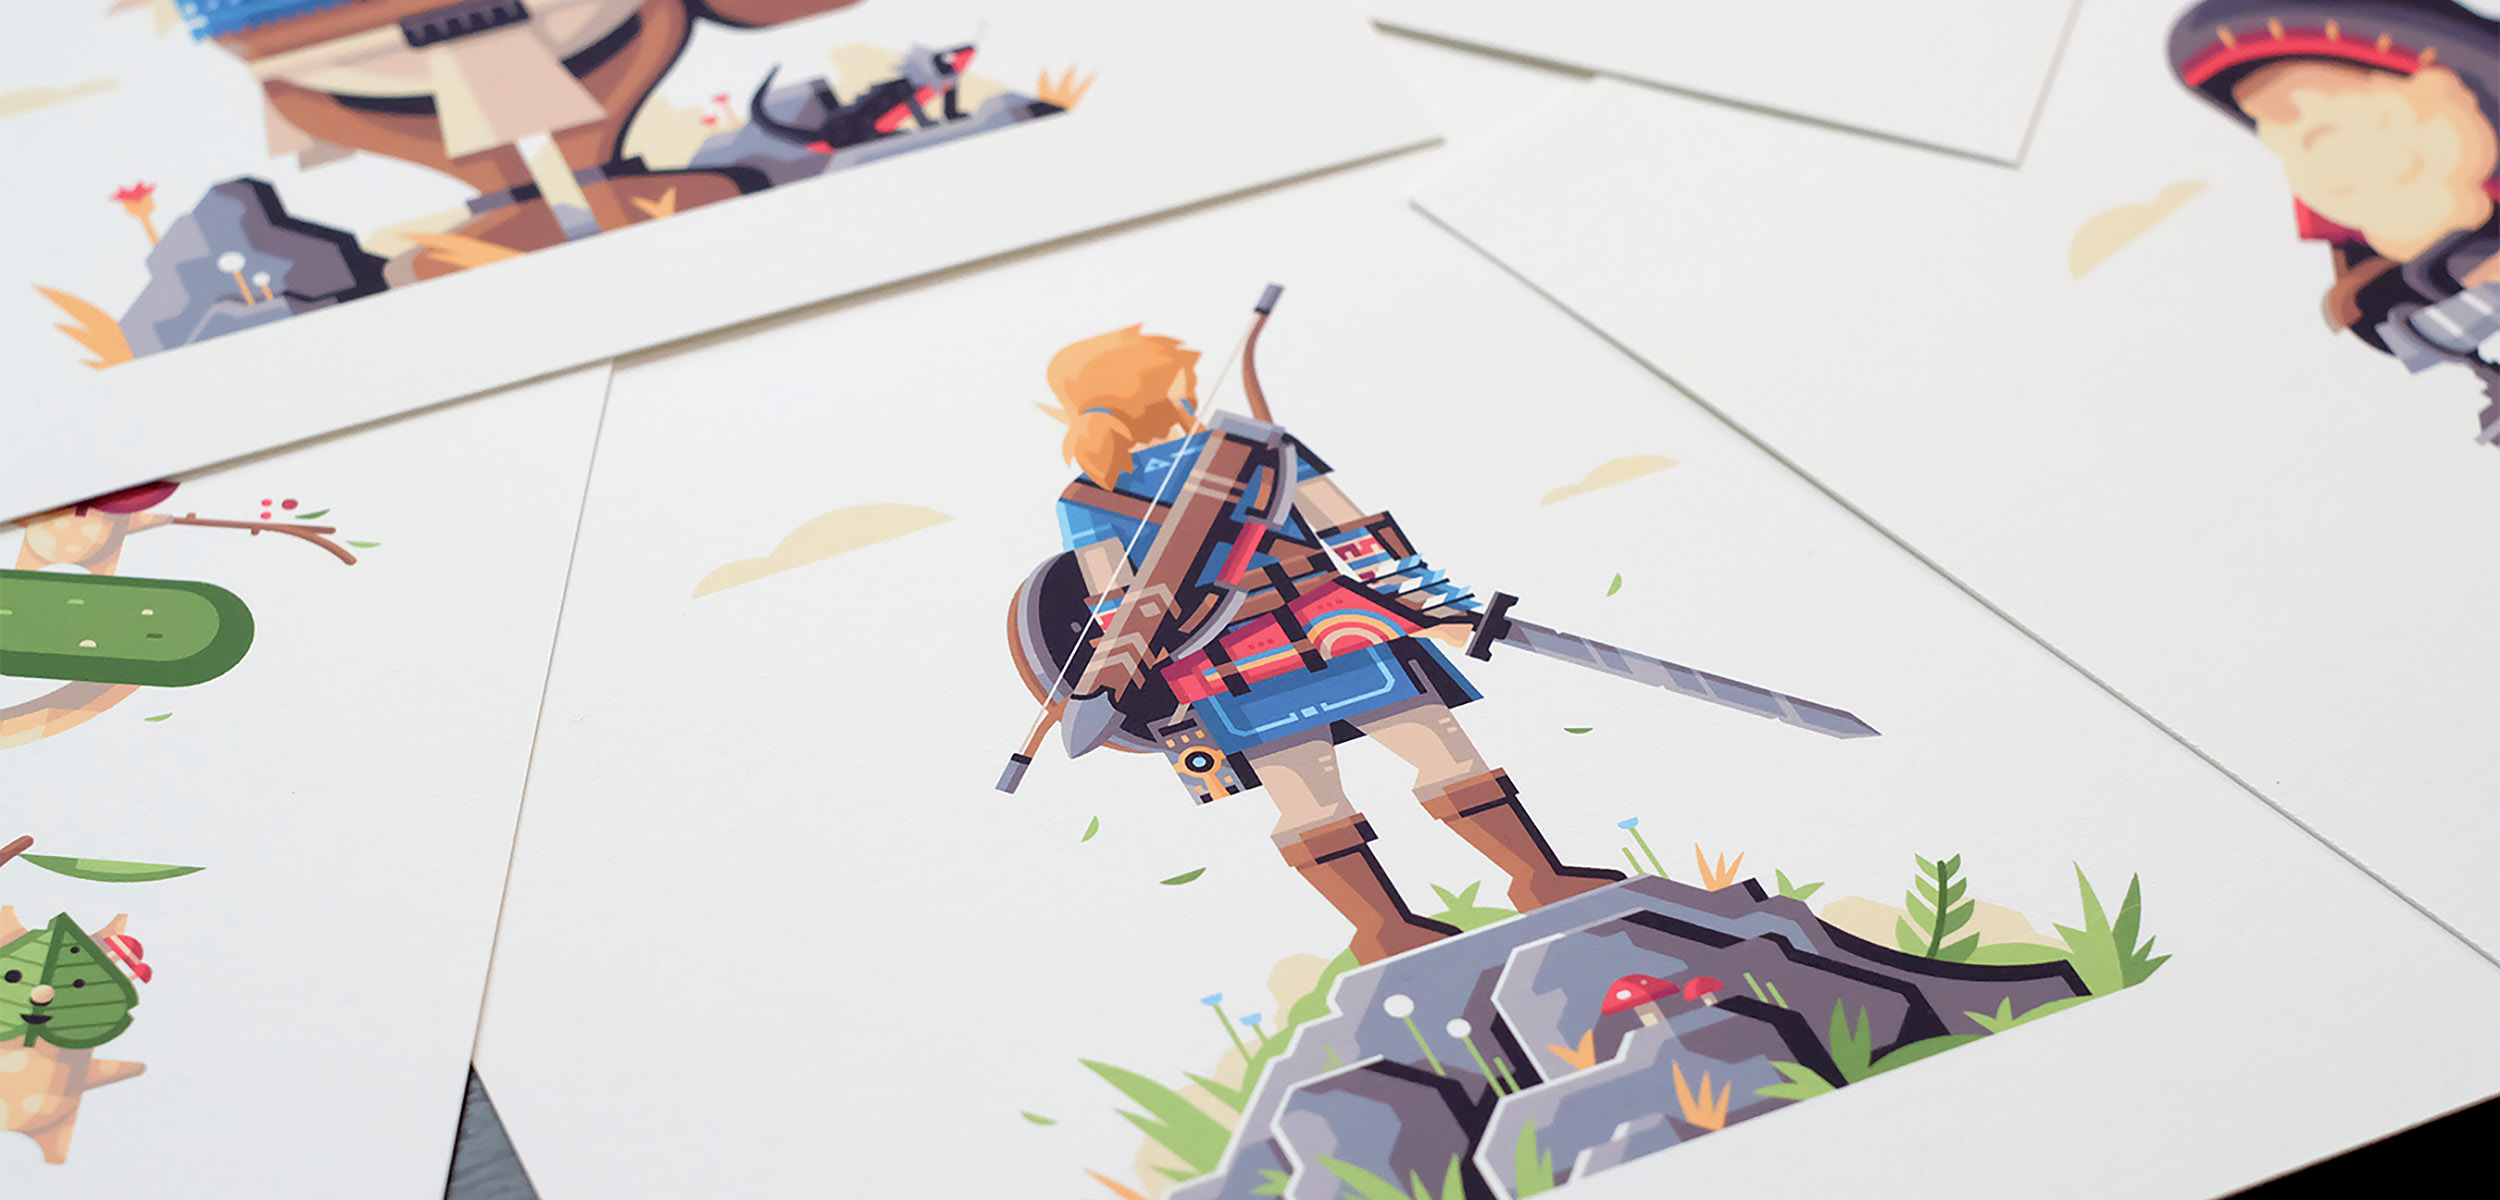 Wild series by Matt Anderson. Inspired by Zelda Breath of the Wild. Header image / detail print photo of Hero of the Wild (Link).